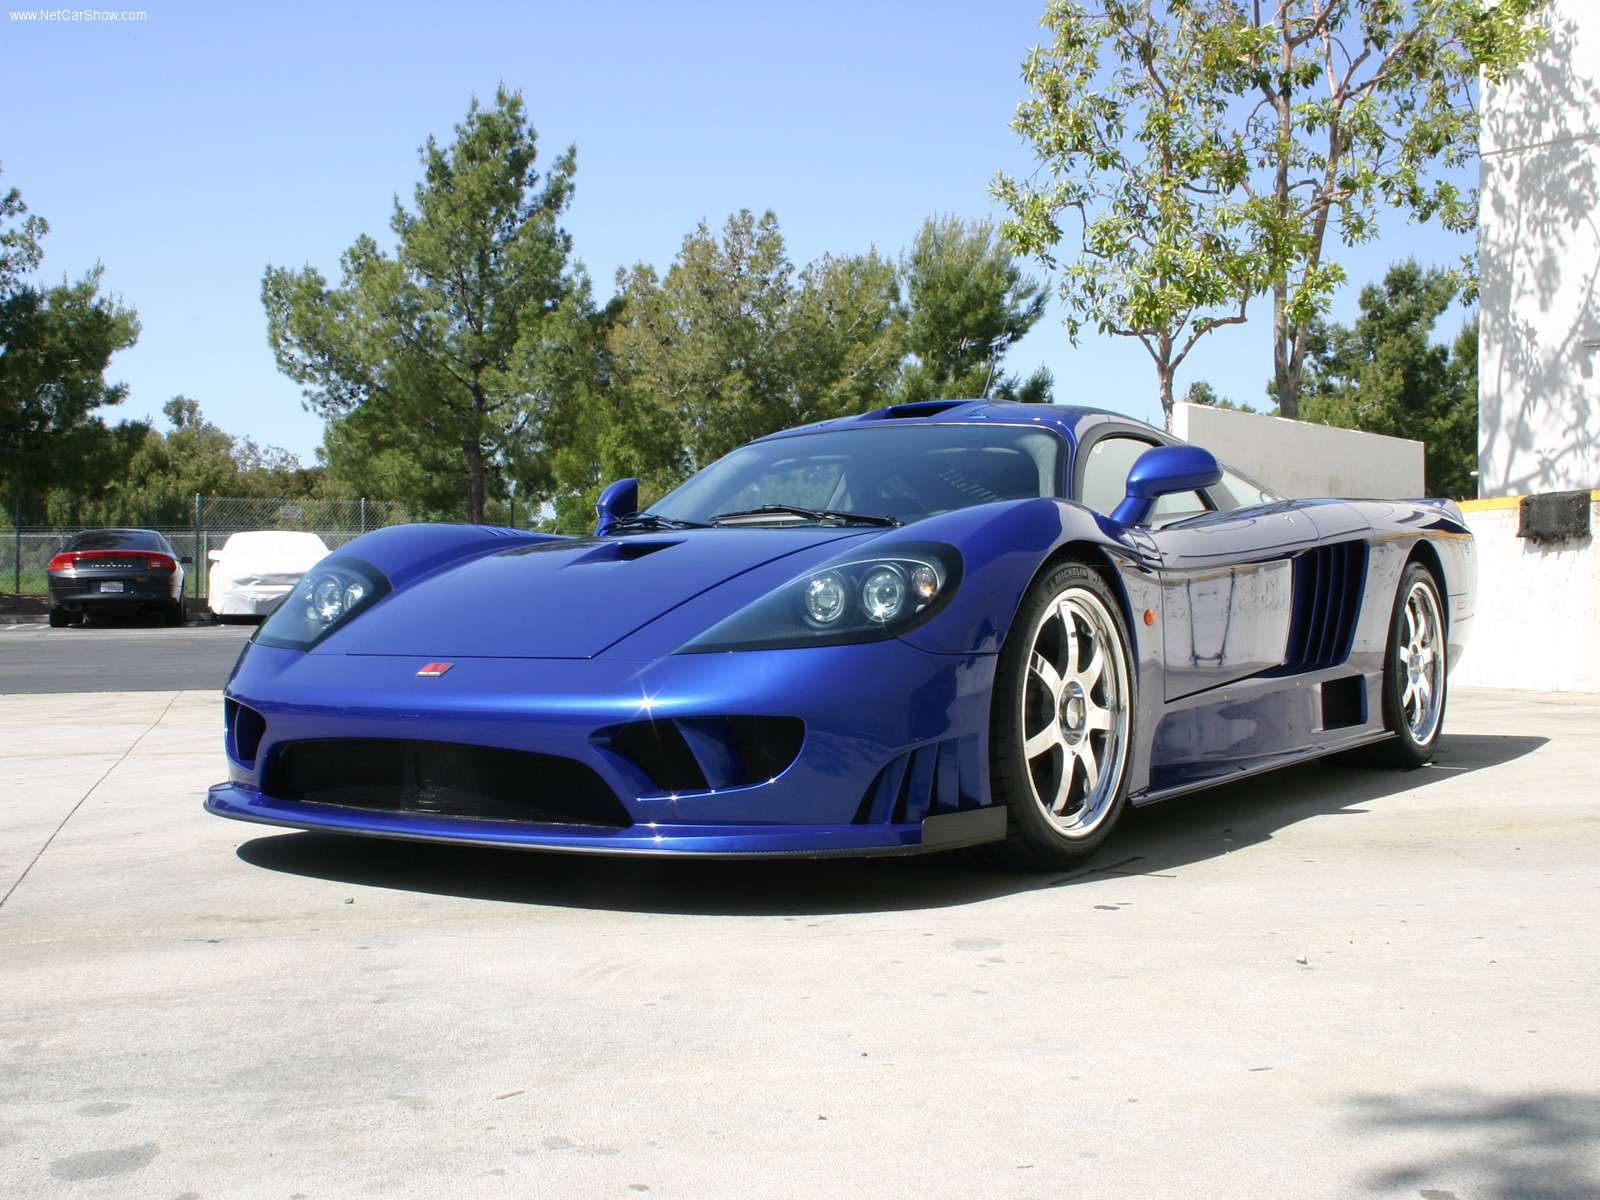 TOP 10 EXPENSIVE THING'S: MOST FASTEST CAR IN WHOLE WORLD